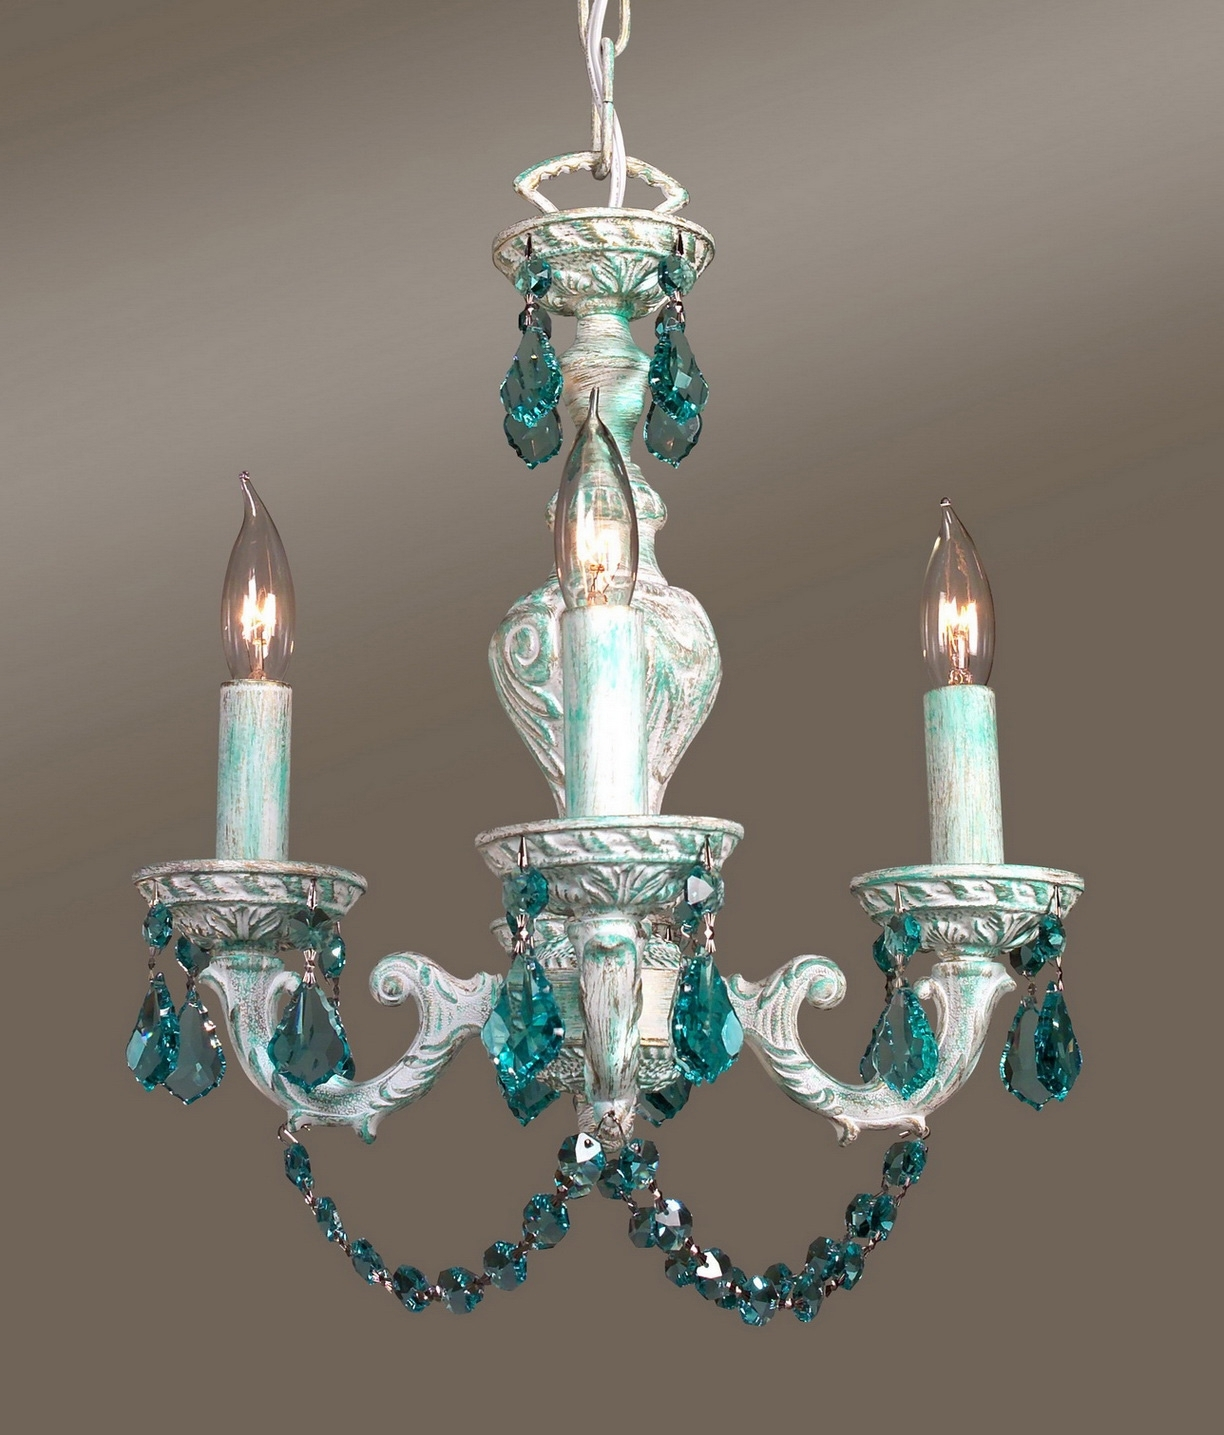 Real Intended For Turquoise Mini Chandeliers (View 3 of 20)